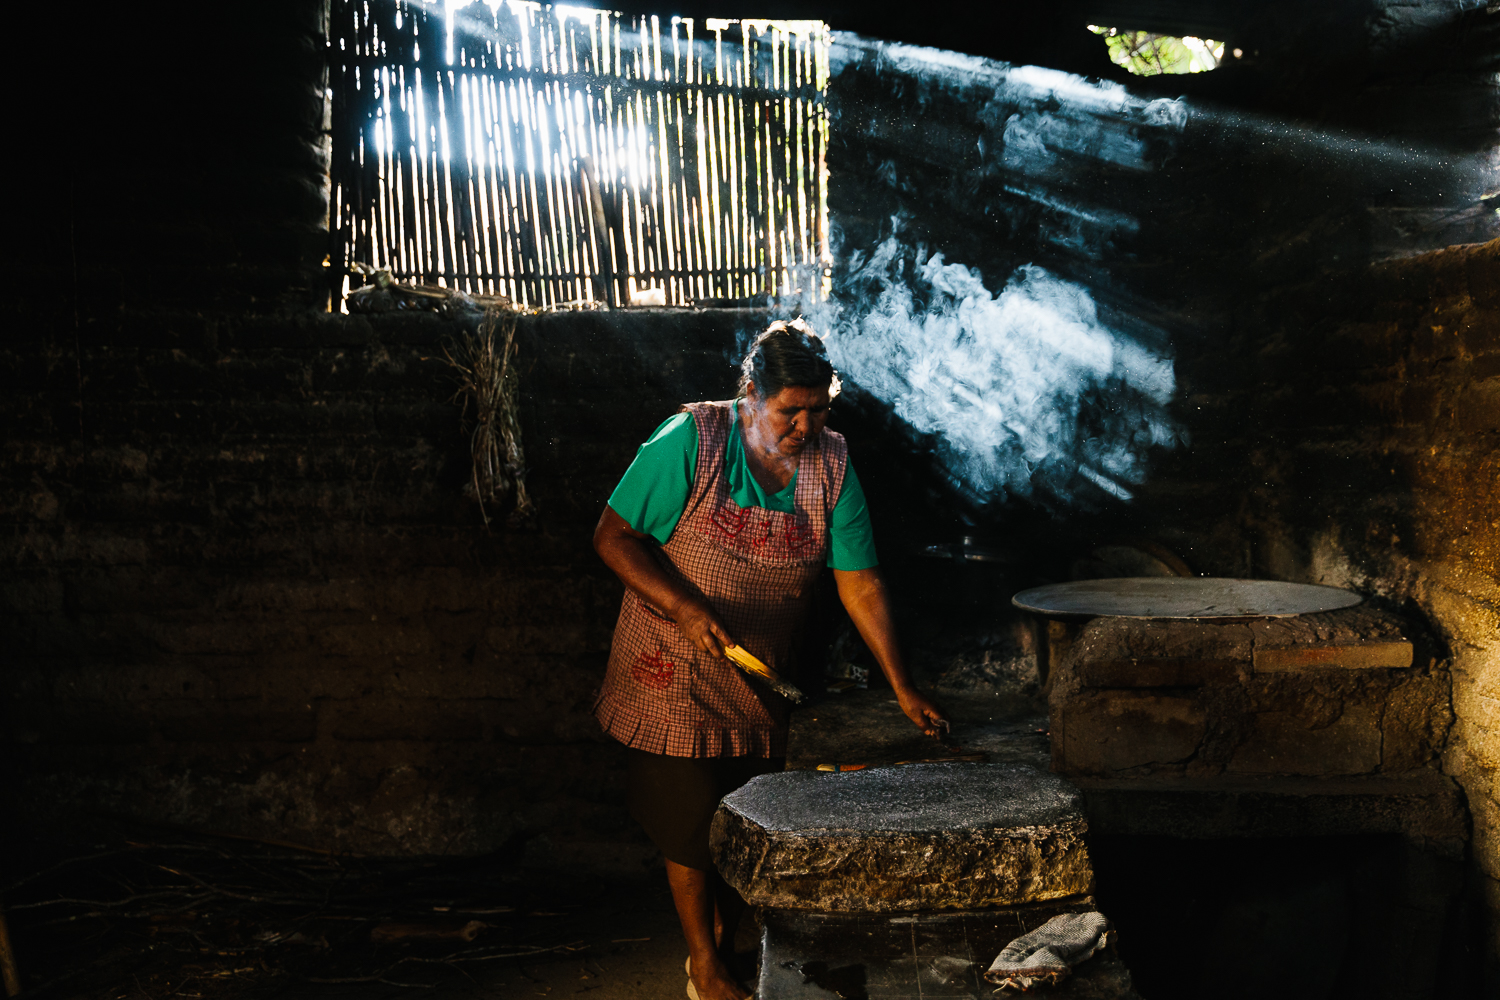 Gloria tending the fire for the comal in her kitchen.